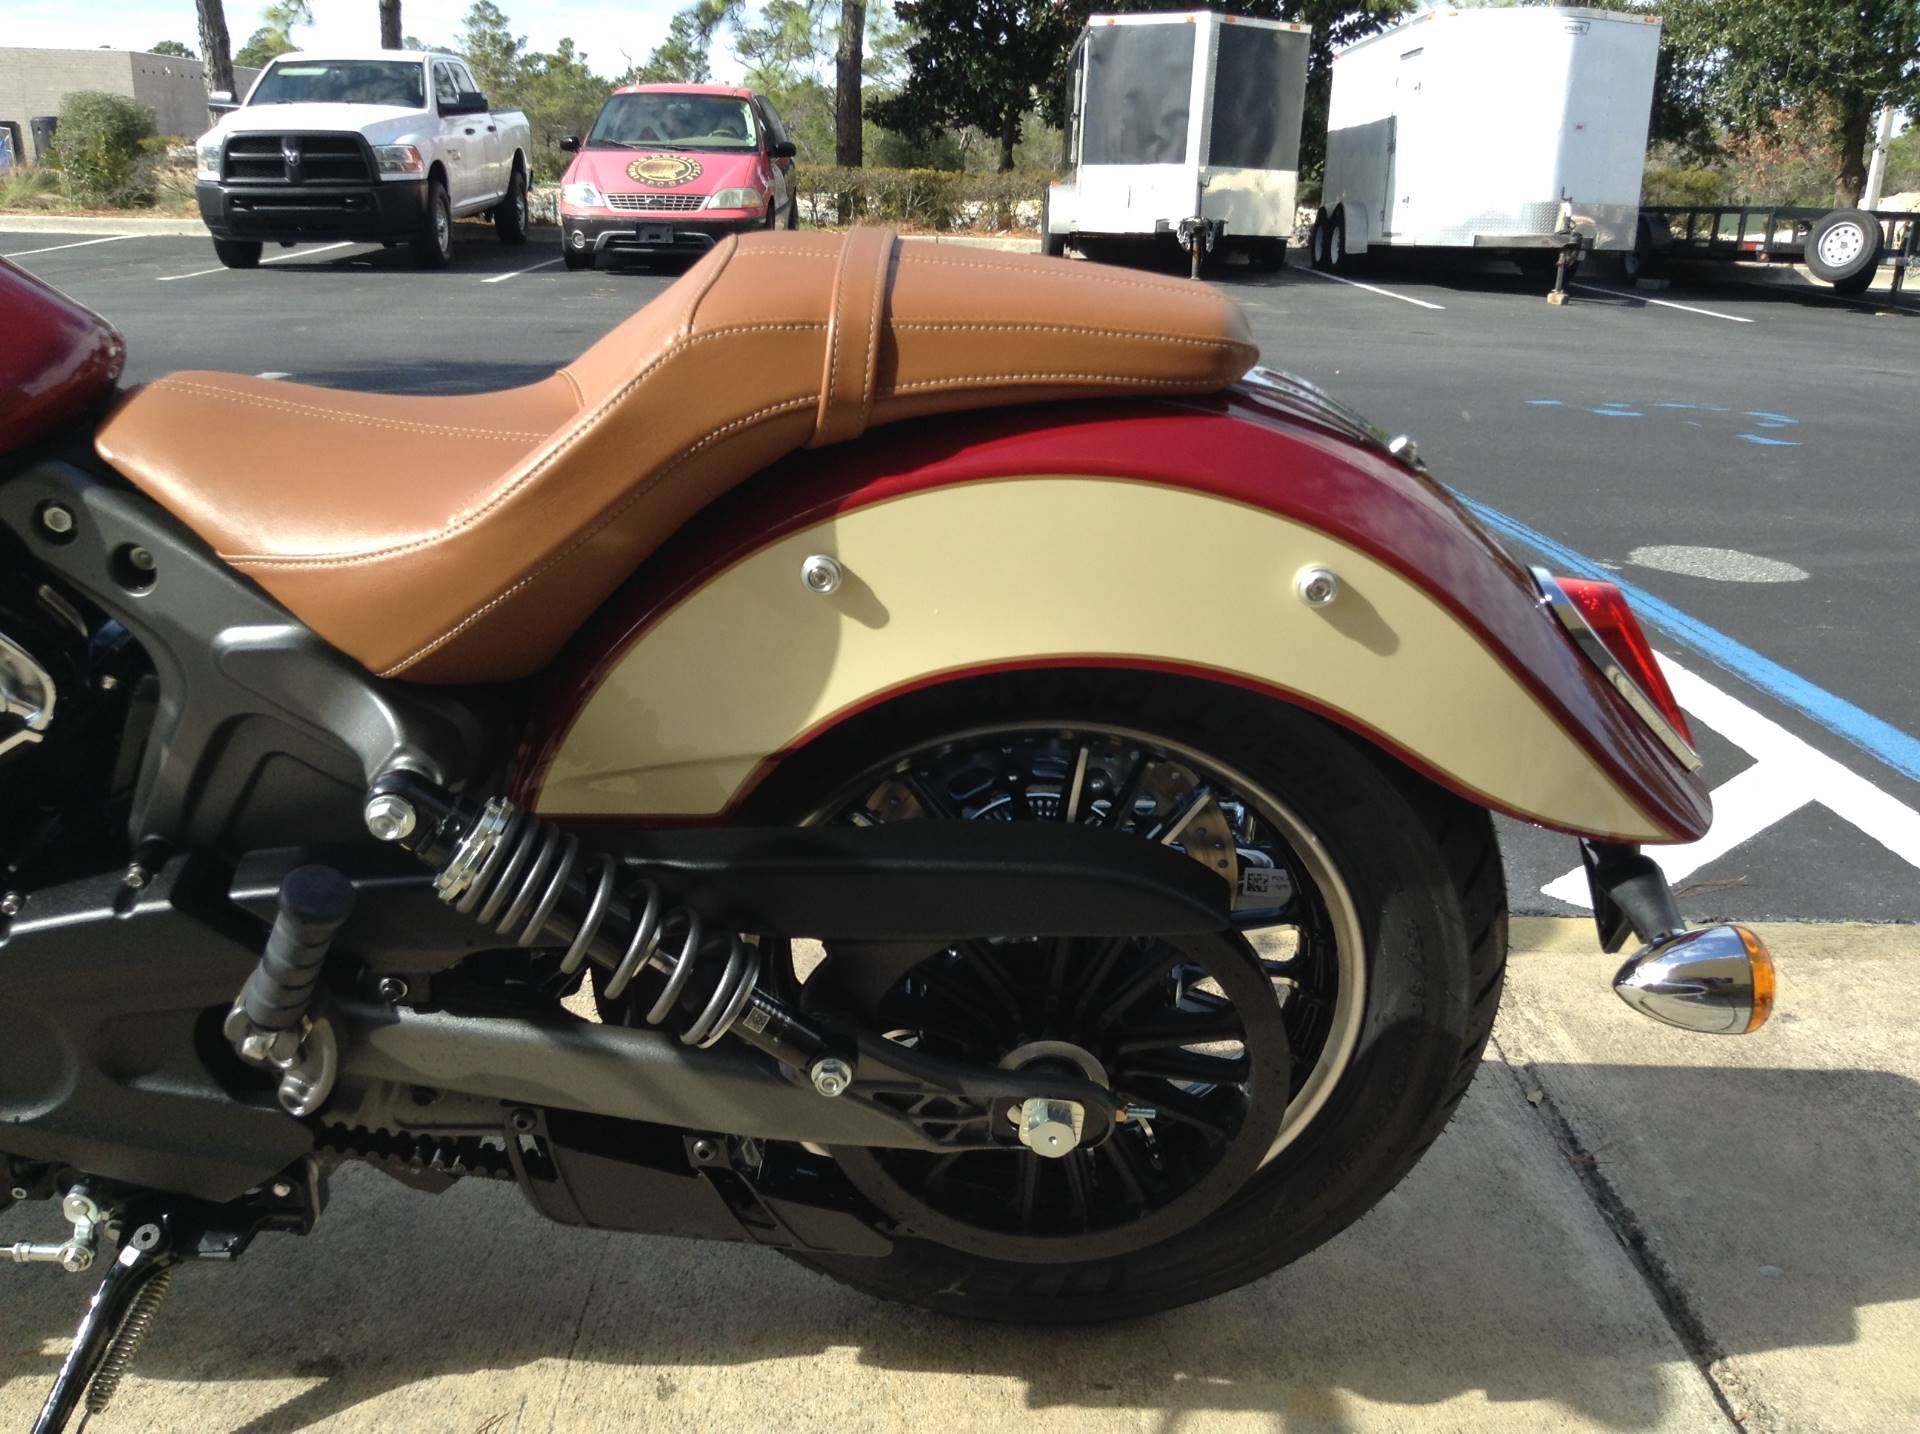 2020 Indian SCOUT ABS in Panama City Beach, Florida - Photo 8